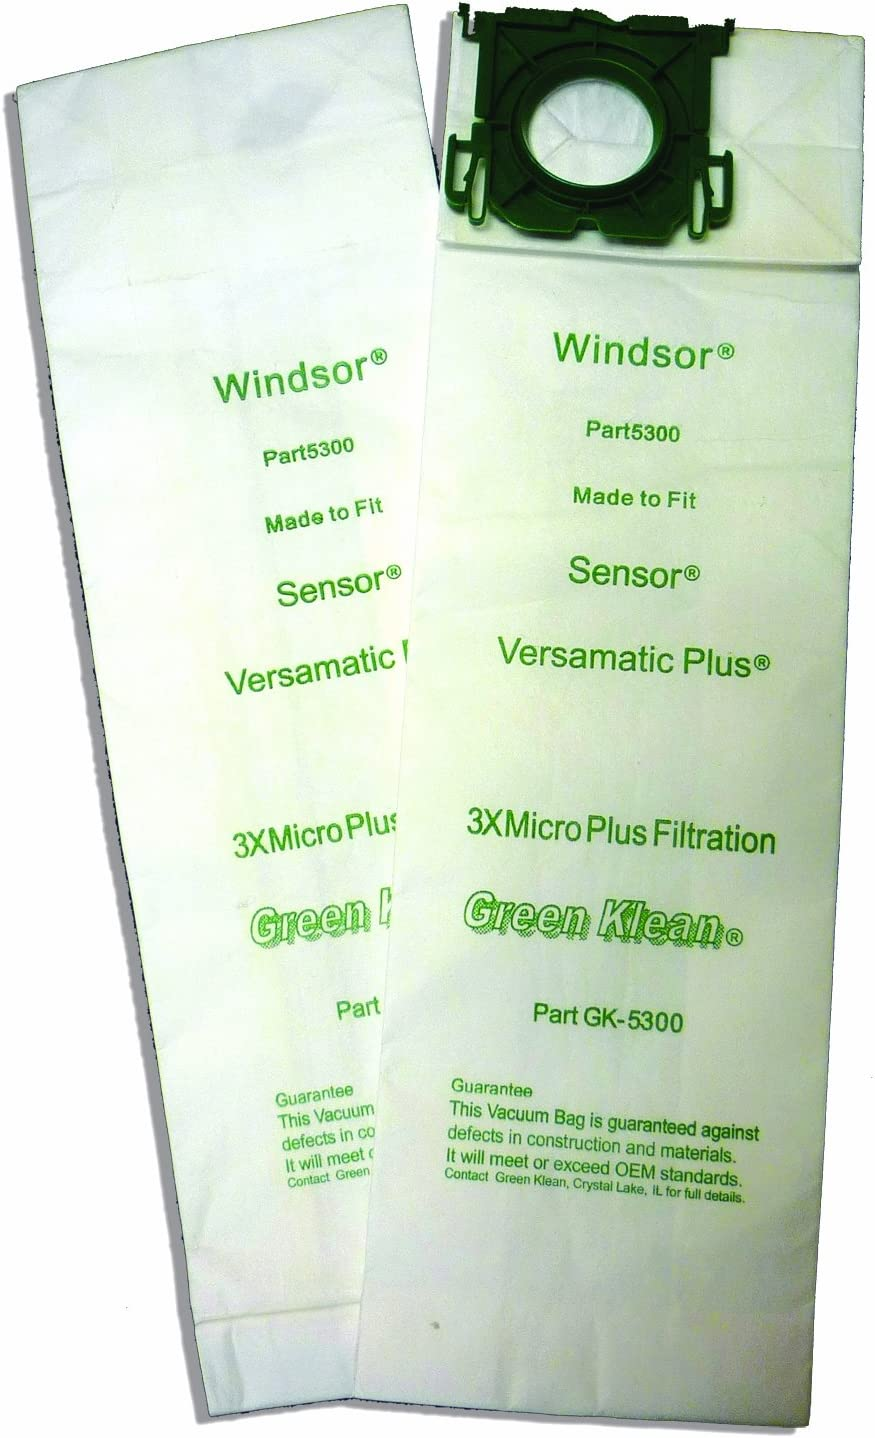 Green Klean 5300 & 8.600-050.0, 2050102000 Windsor Sensor/Versamatic Plus Replacement Vacuum Bags